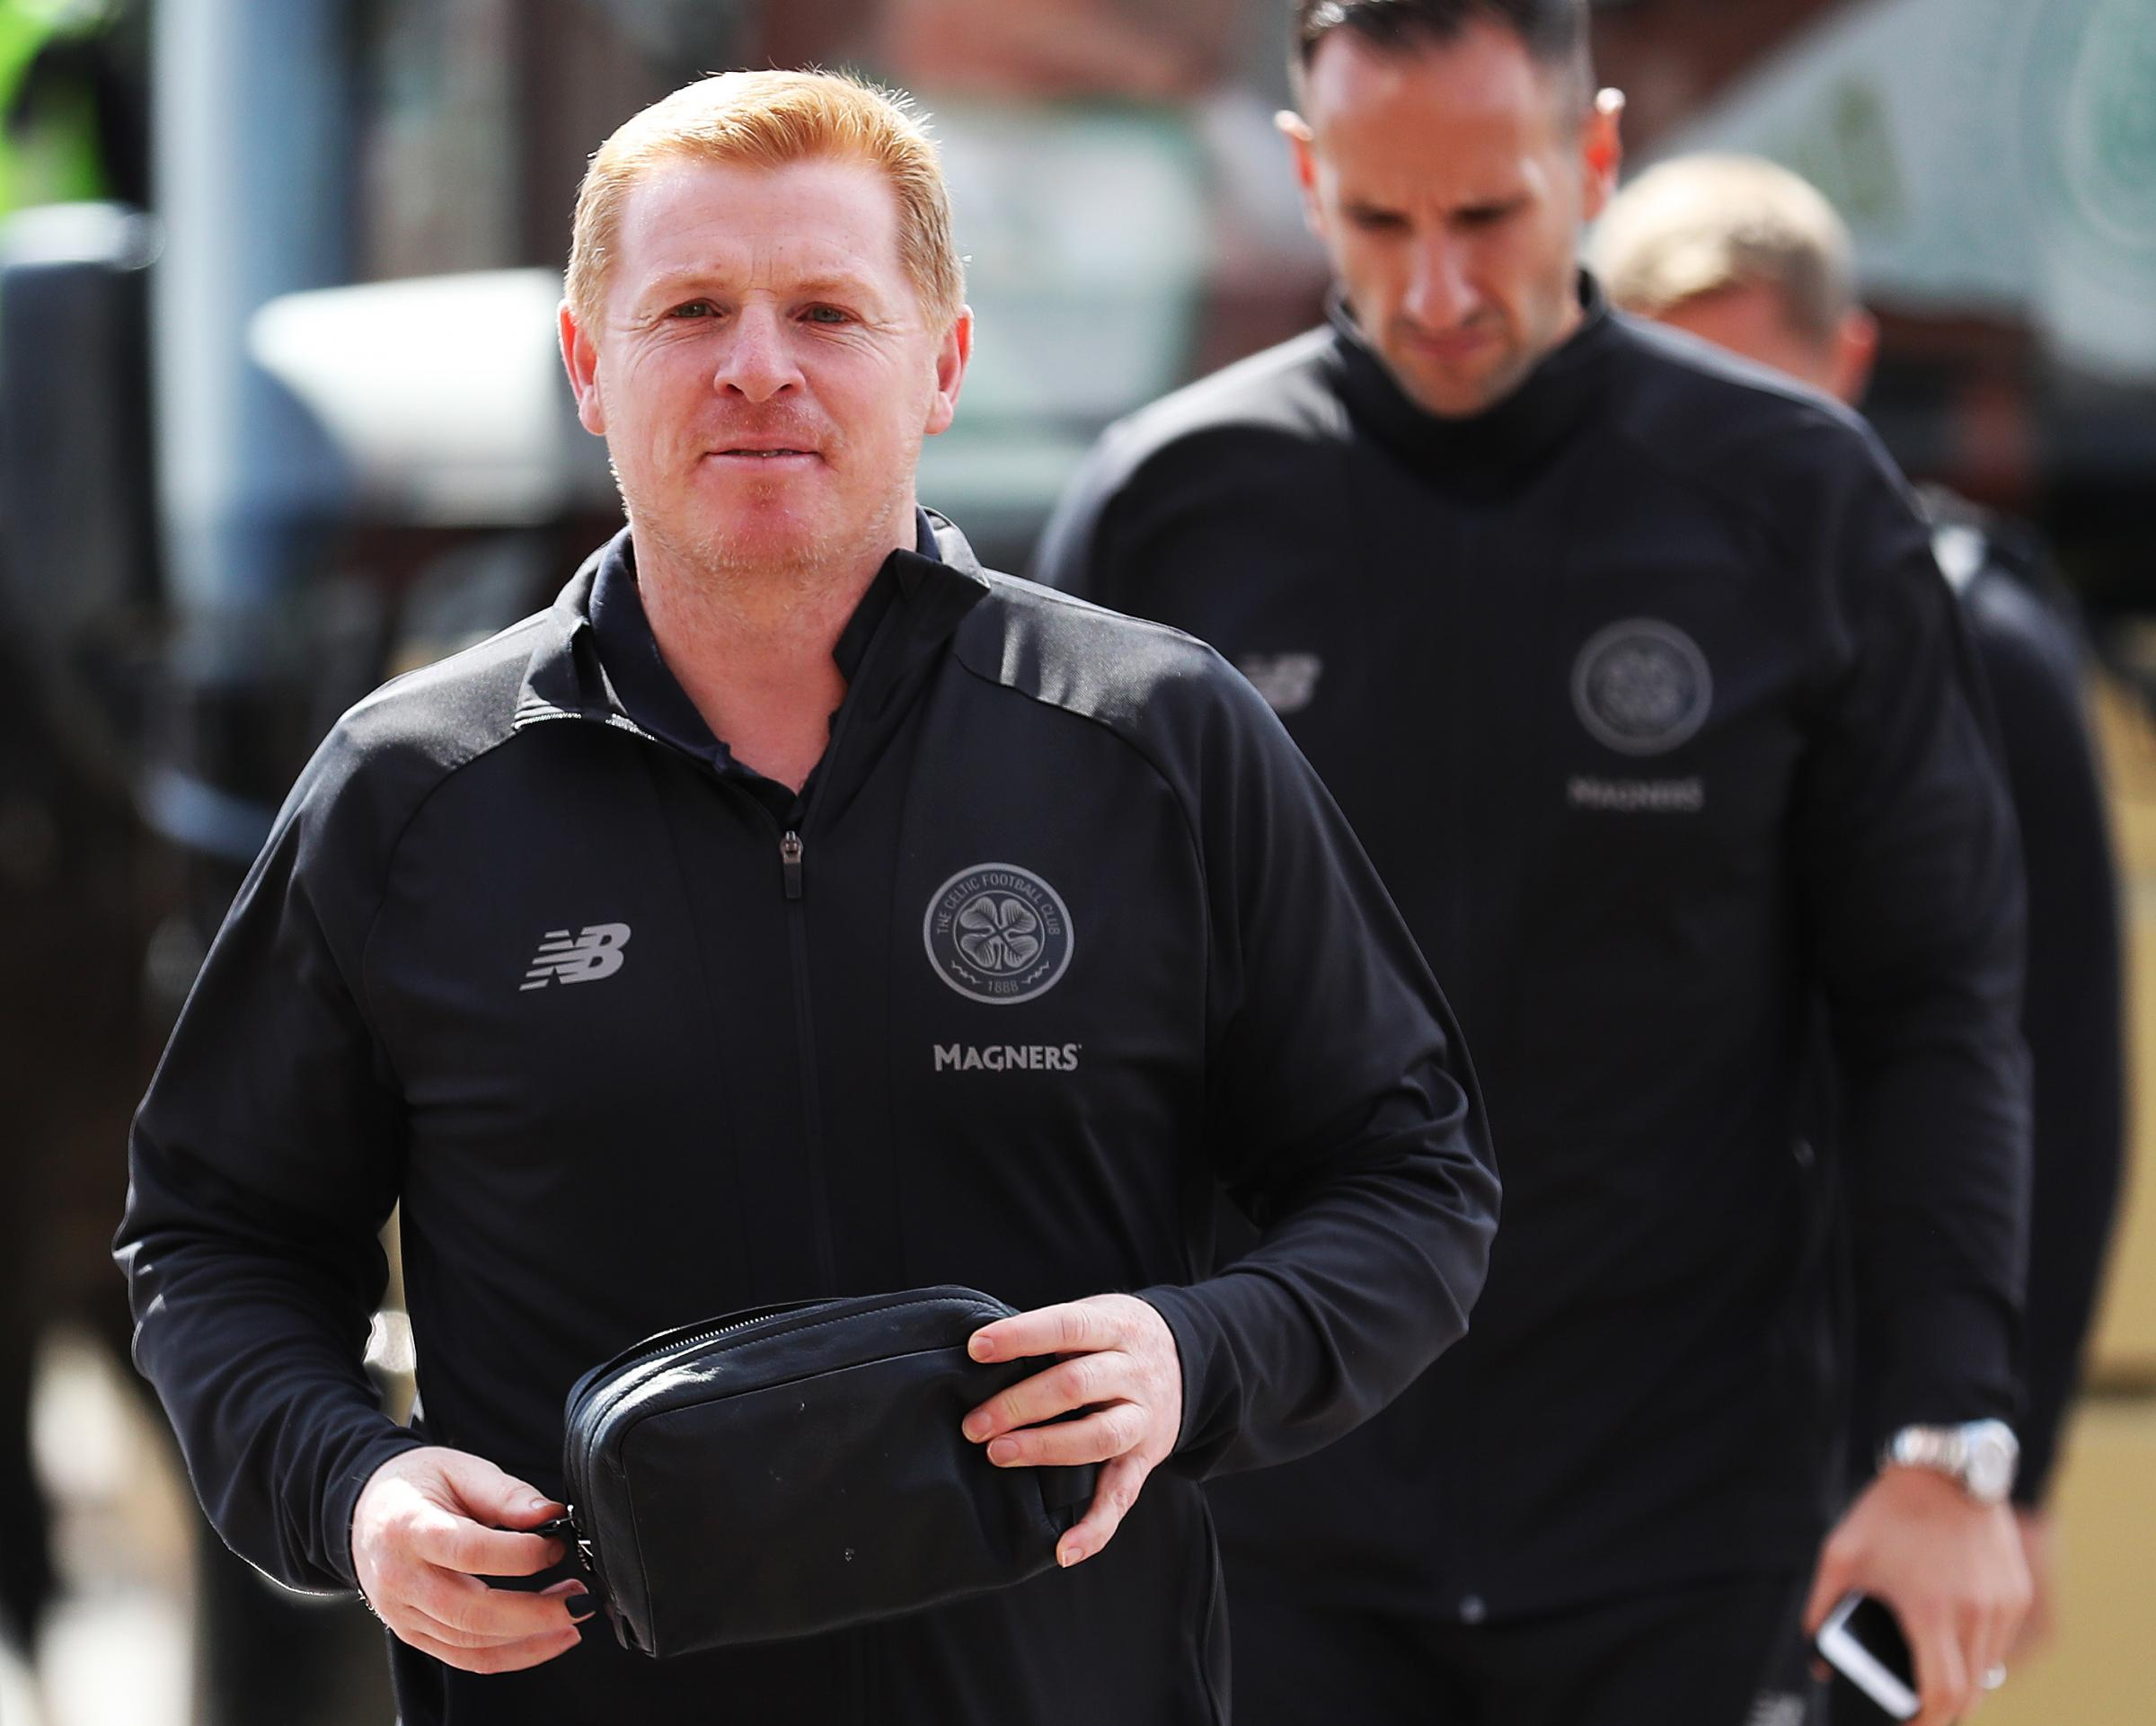 Celtic set to step up transfer activity - with Fousseni Diabate, Birger Meling and Greg Taylor on their radar